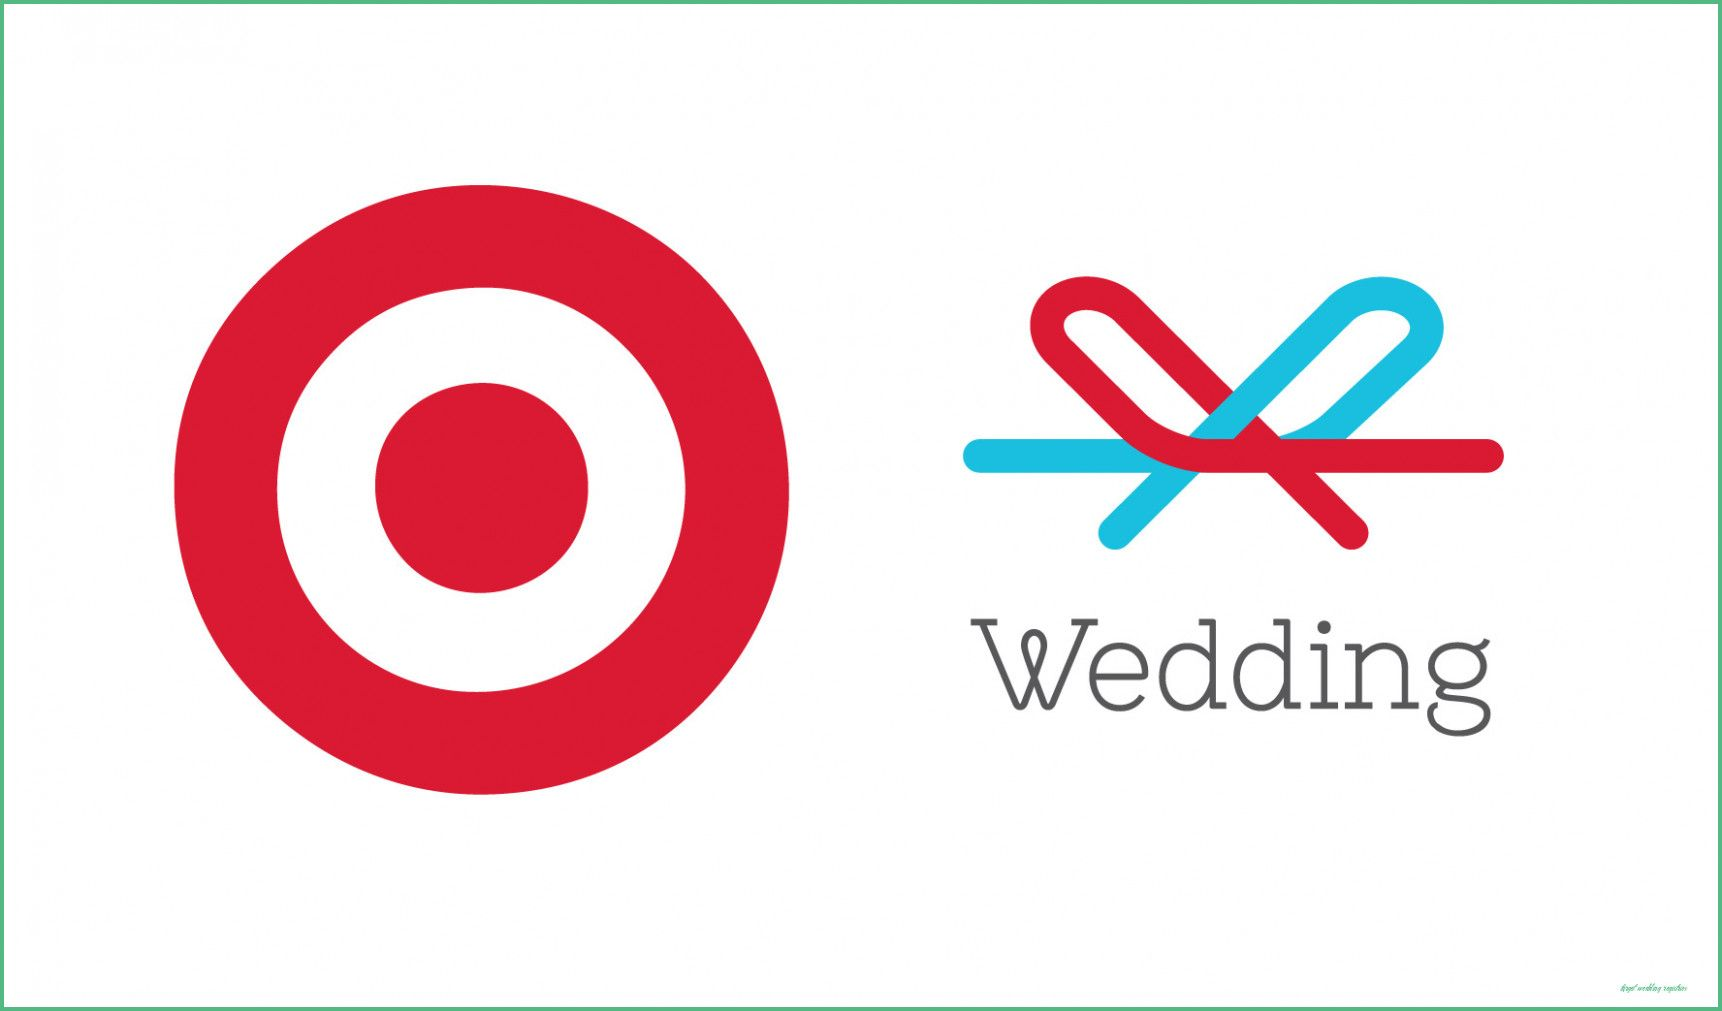 Ten Facts You Never Knew About Target Wedding Registries Target Wedding Registries Target Wedding Target Wedding Registry Wedding Planning Guide